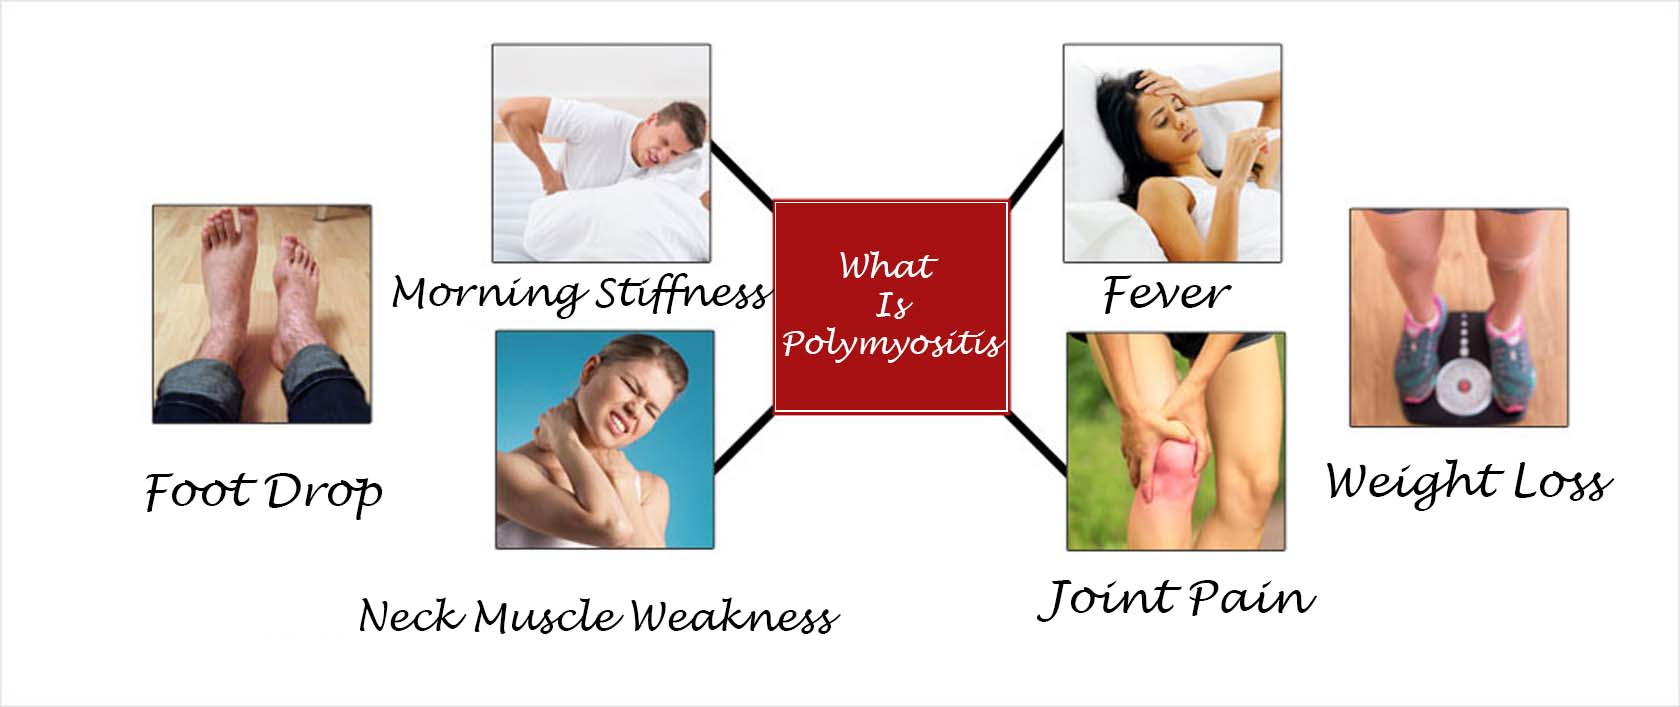 5 Things To Know About Polymyositis